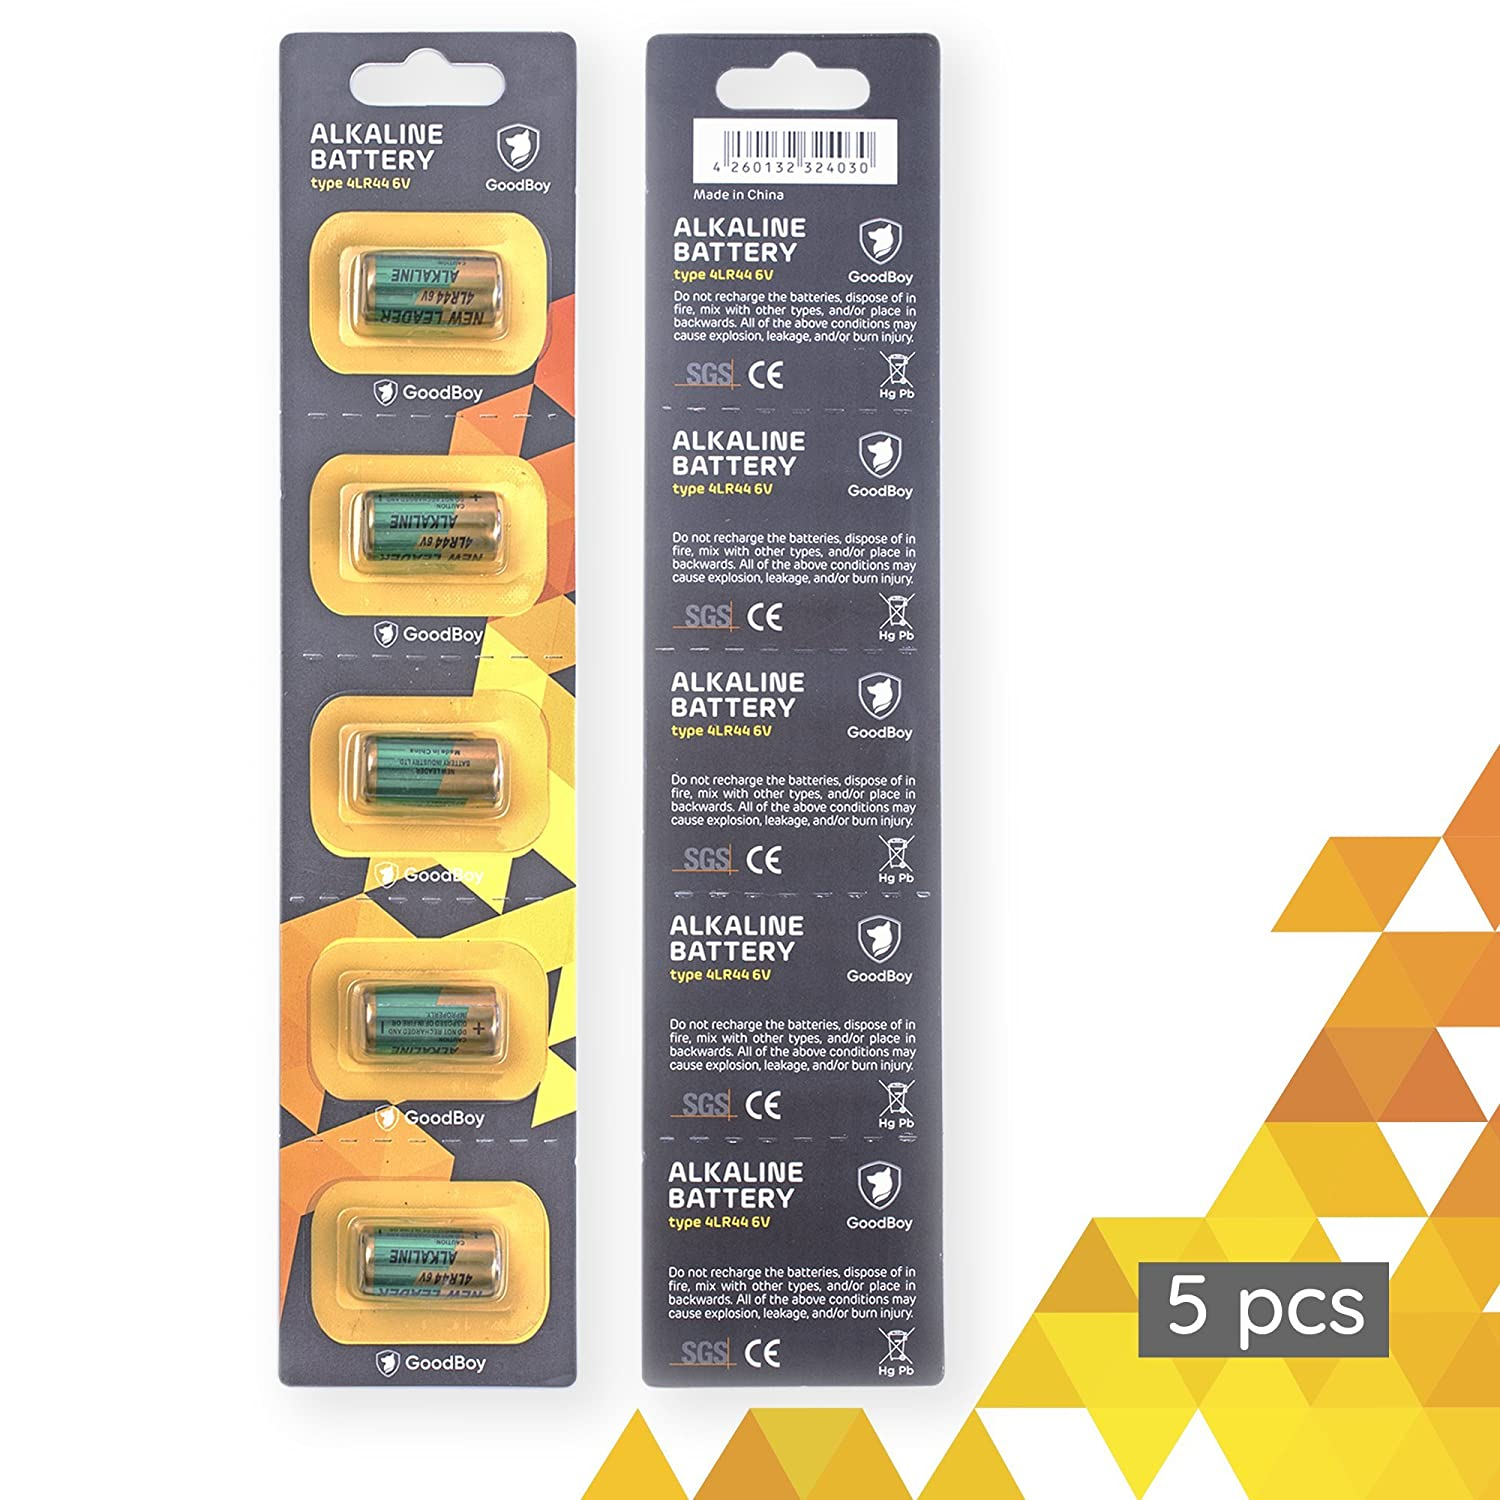 Bark Collar Batteries By Goodboy 5 Pack 6v Alkaline Arta Cutaway Diagram Show A Typical Cell Or Battery With 4lr44 Also Known As Px28a A544 K28a V34px Health Personal Care